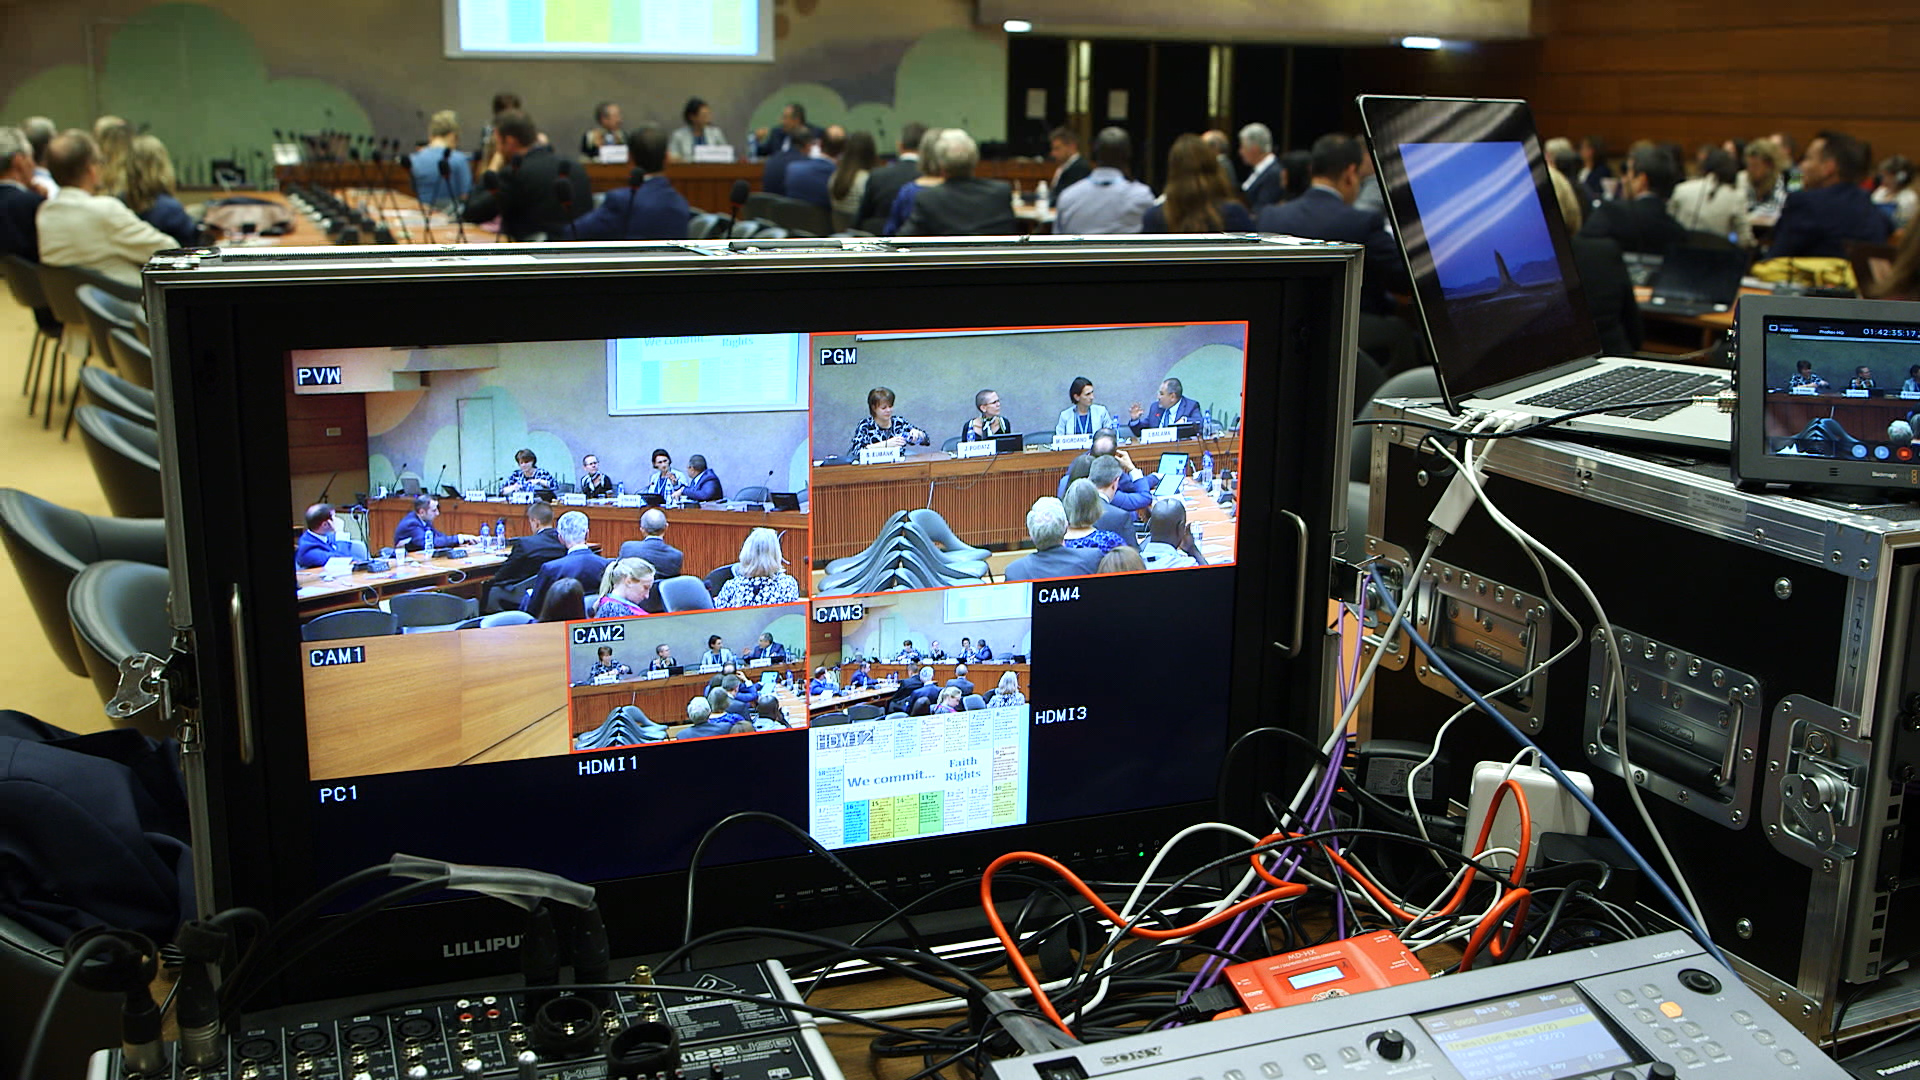 Behind the scenes at a panel discussion at the United Nations in Geneva, Tuesday, Sept. 17, 2019.